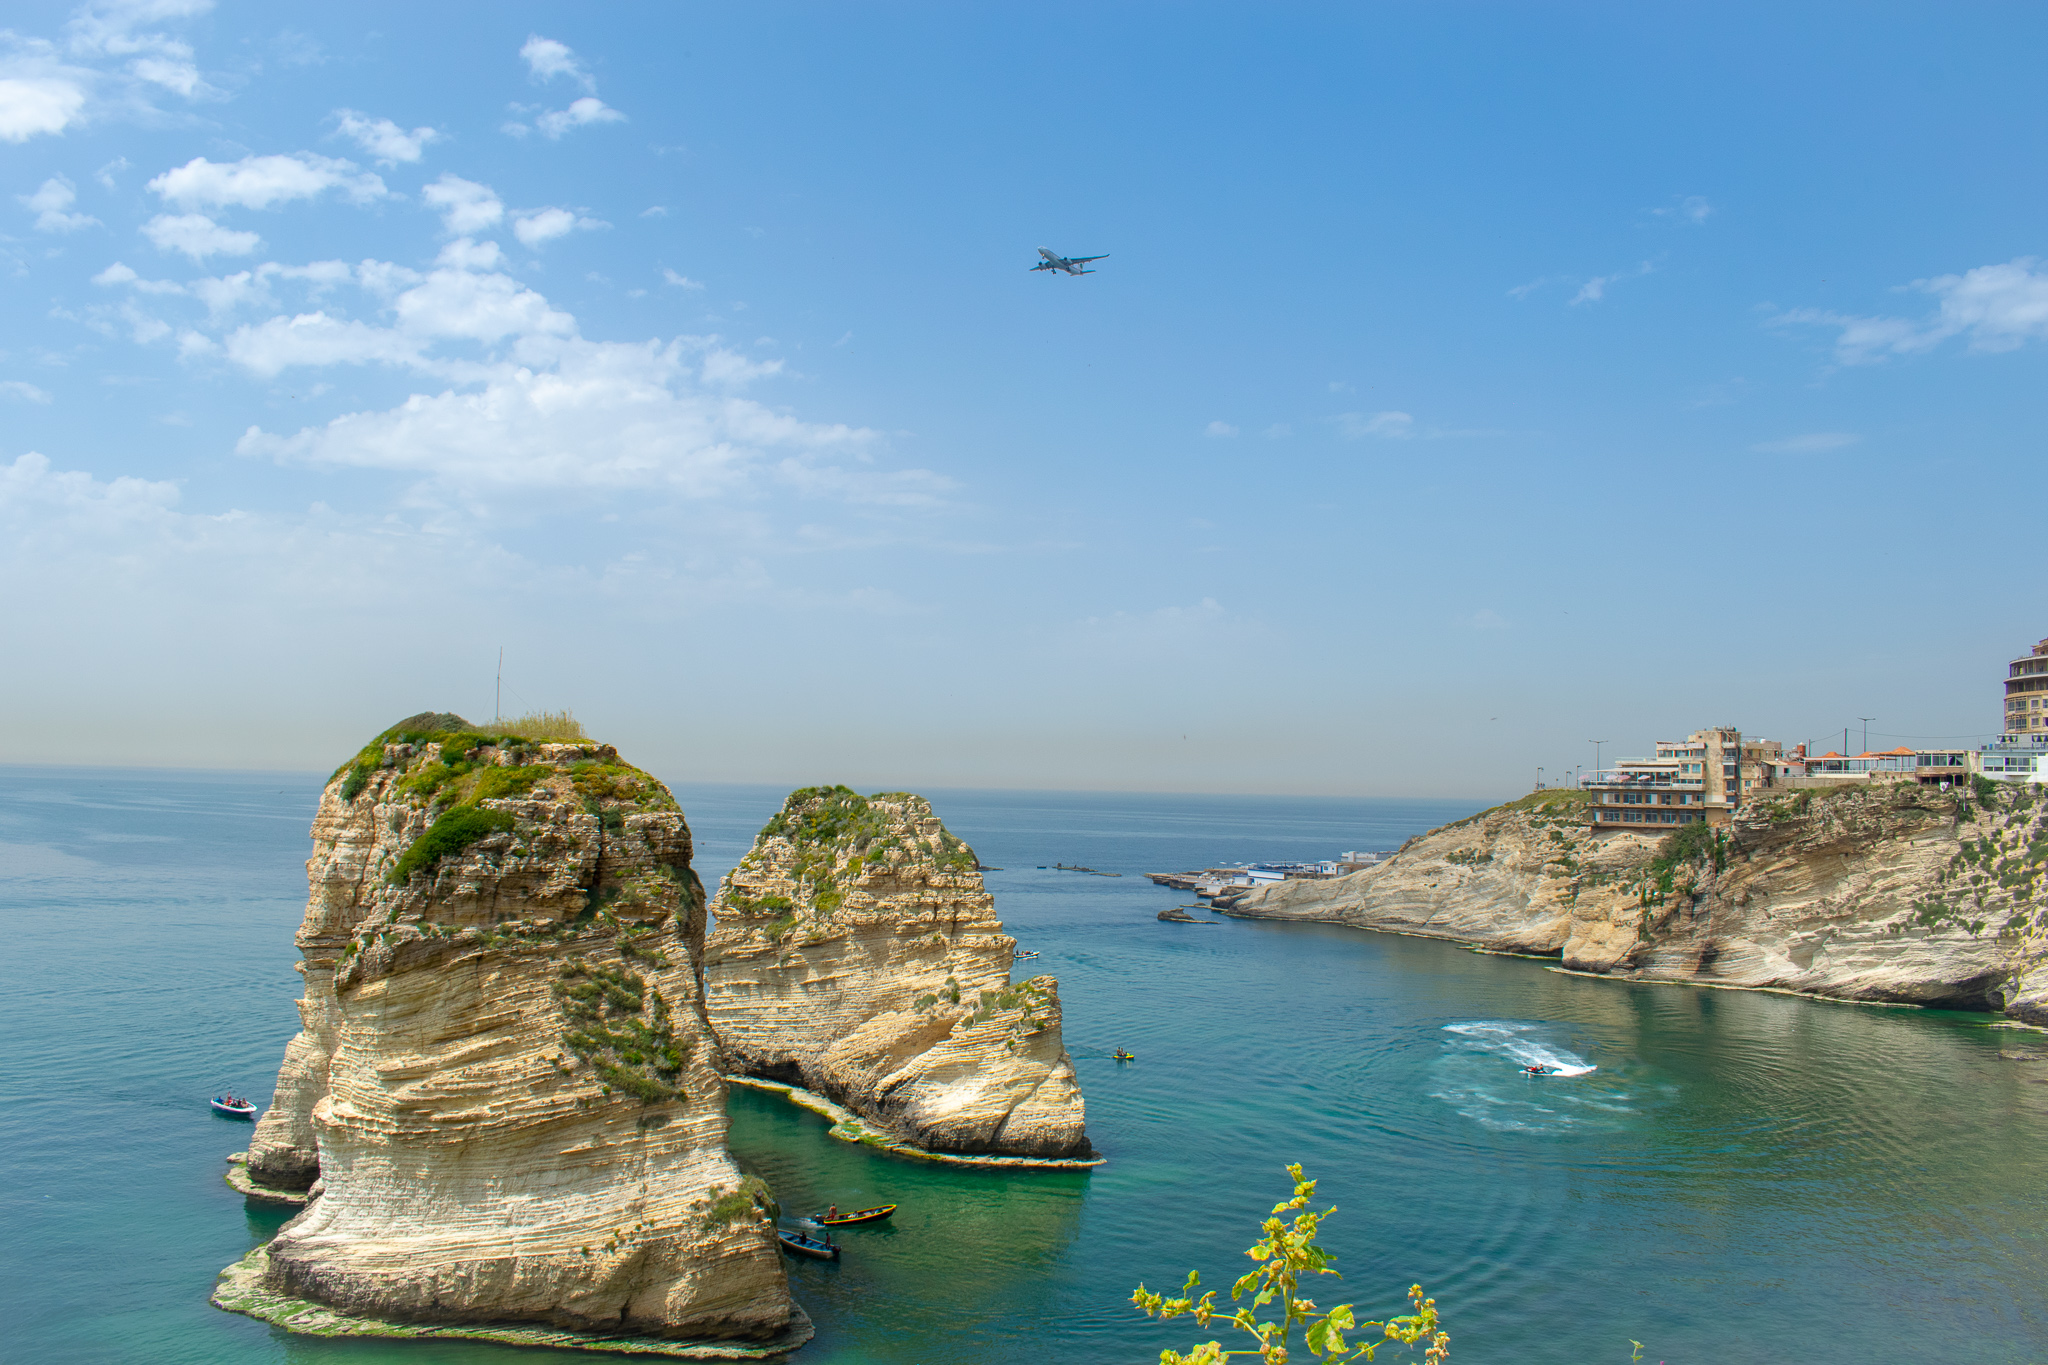 Or why not explore the coastal beauty of Beirut?